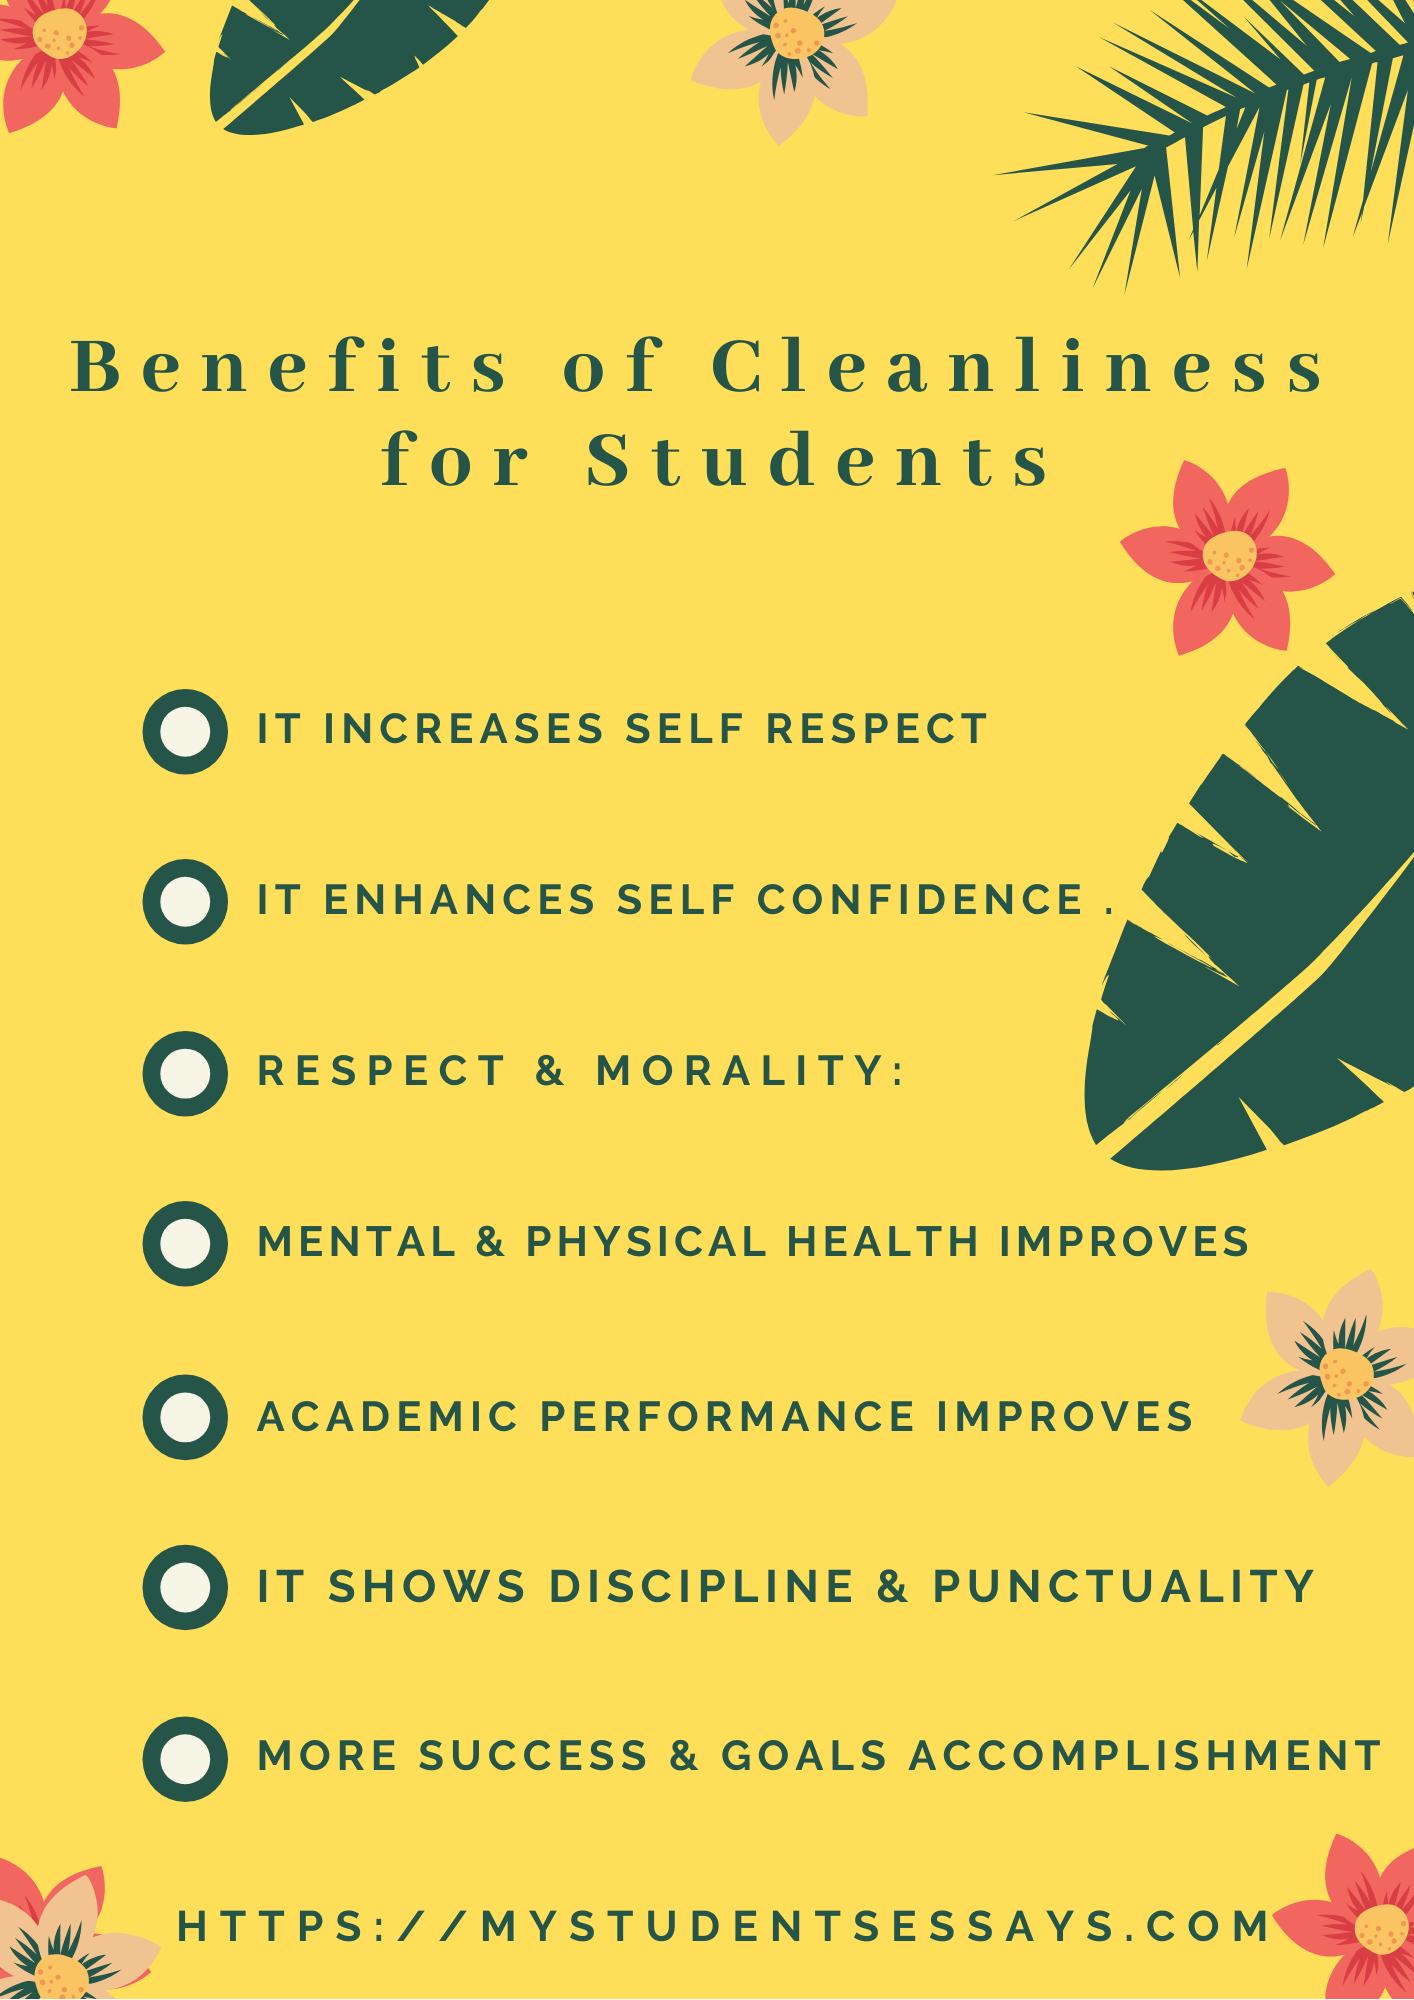 Essays on Cleanliness For Students